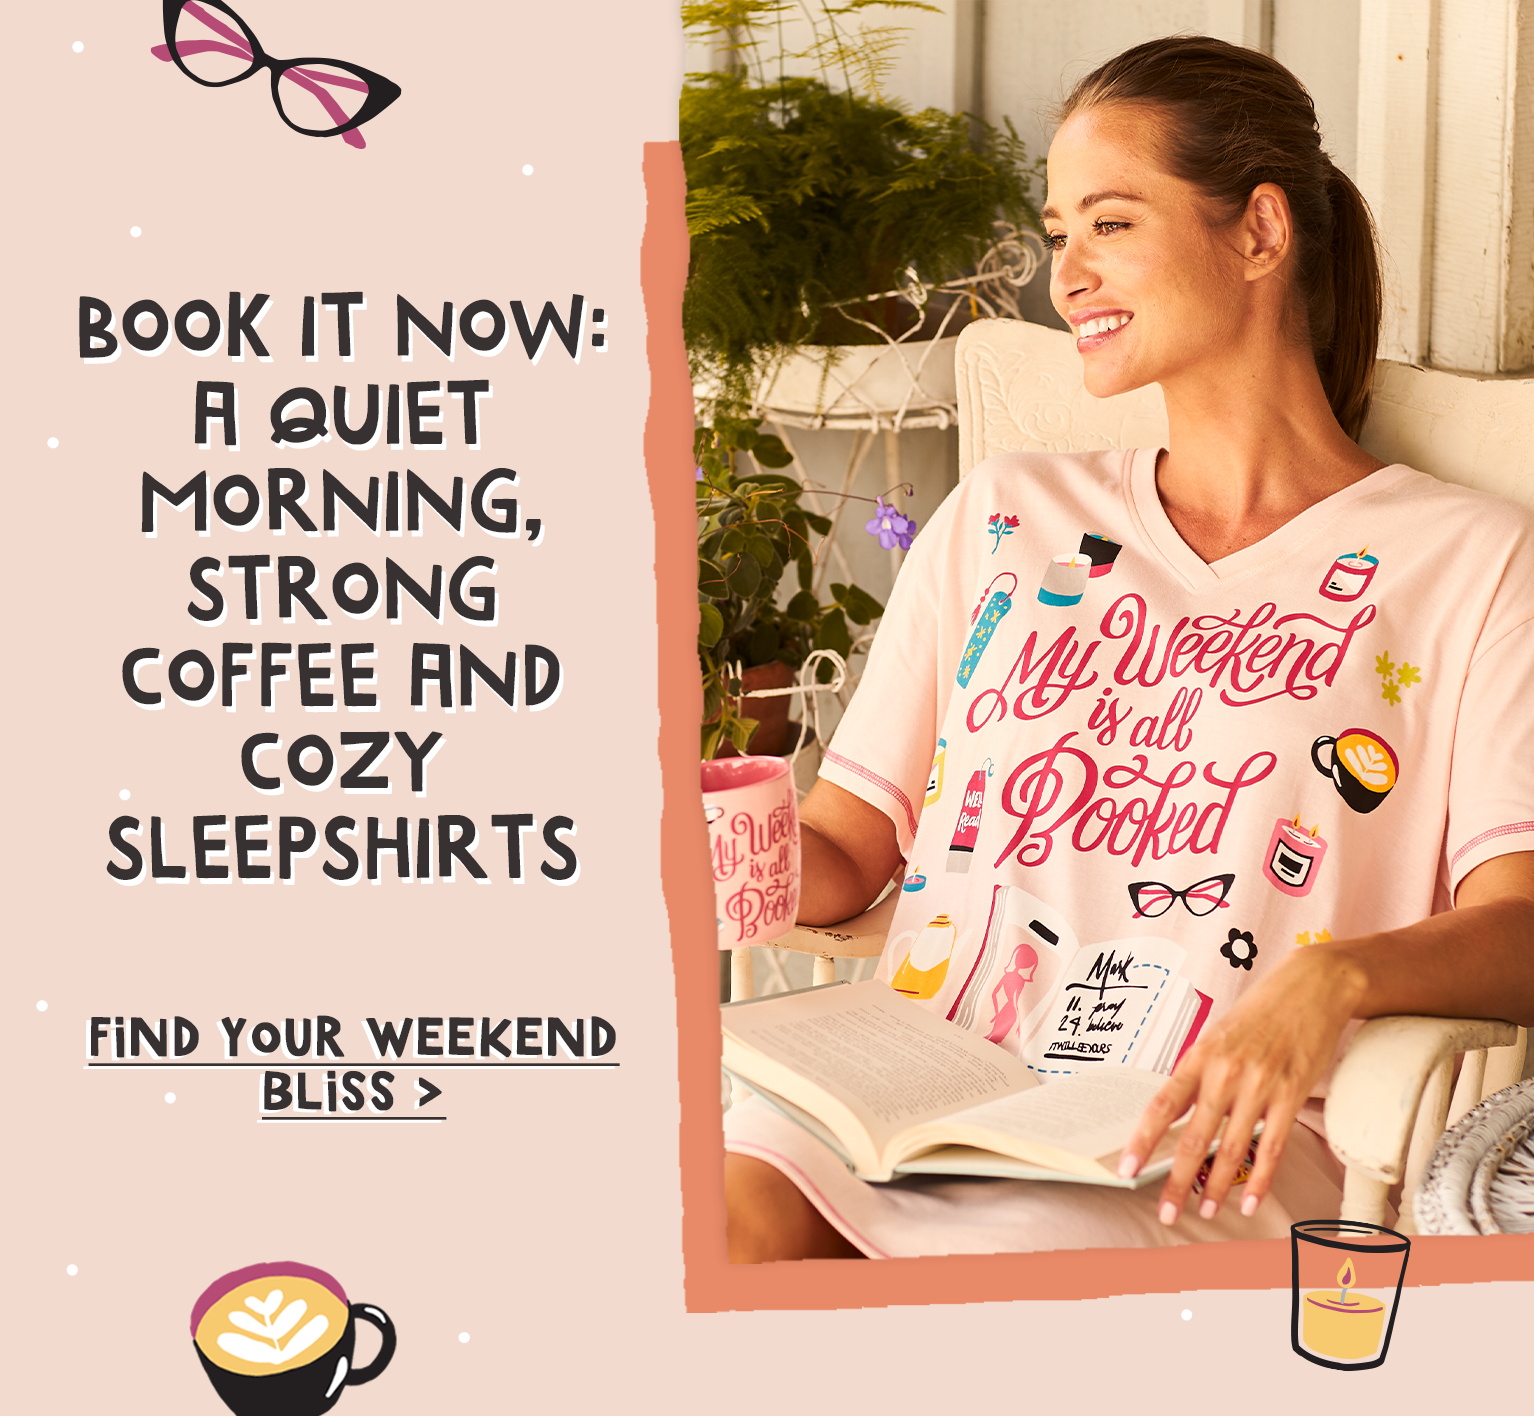 Sleepshirts SALE